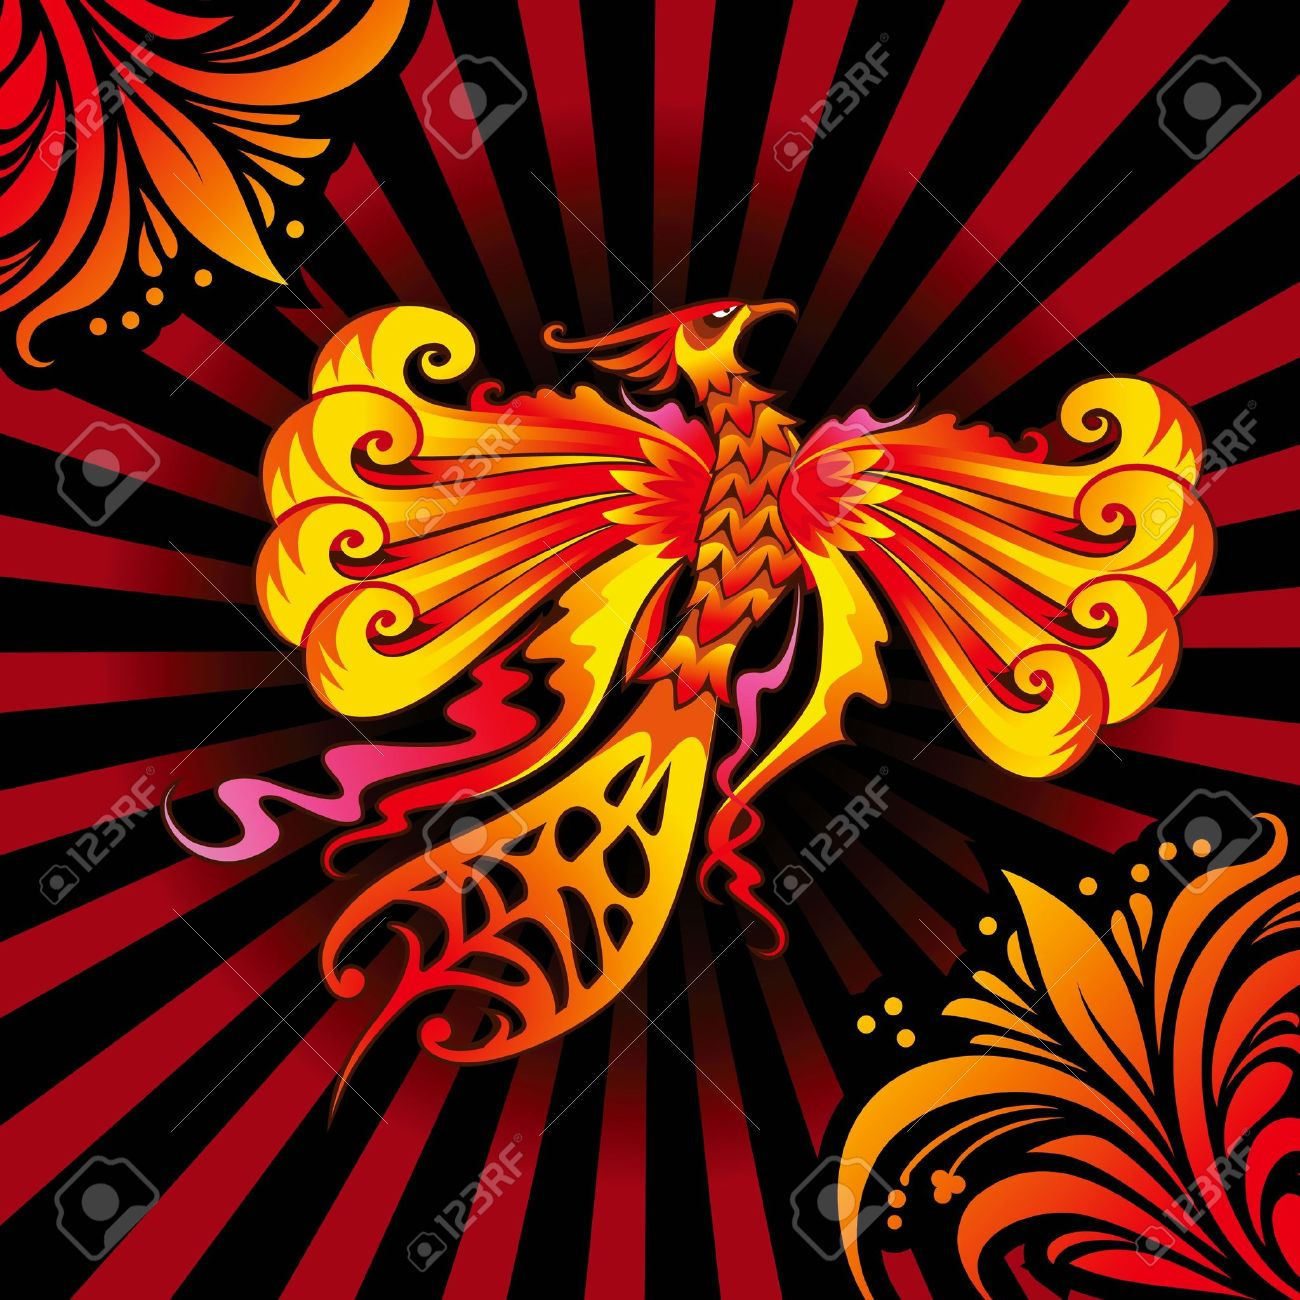 Mythical Phoenix or flaming bird,  illustration Stock Vector - 14651458